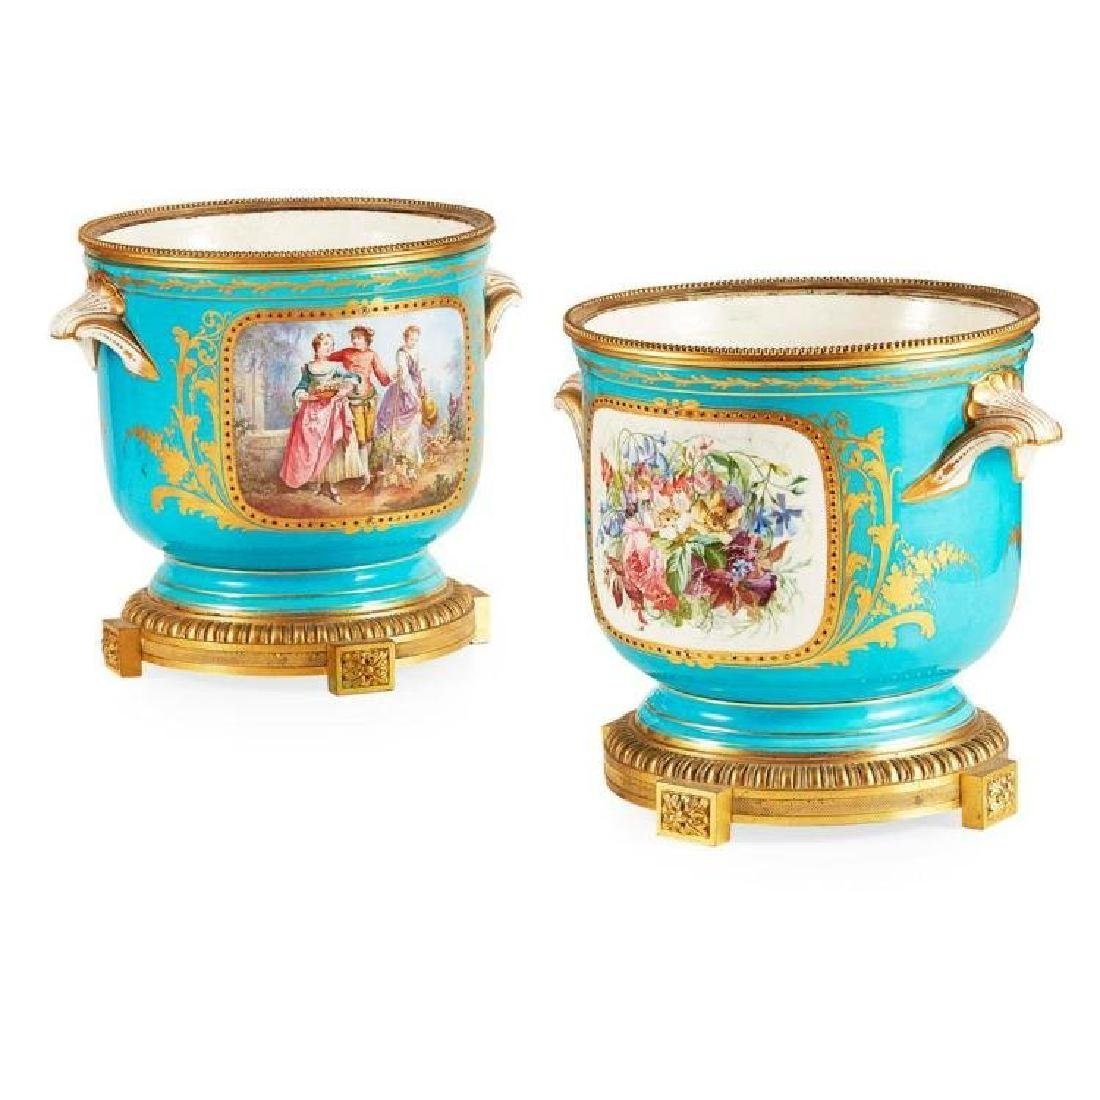 PAIR OF SEVRES STYLE PORCELAIN JARDINIERES 19TH CENTURY